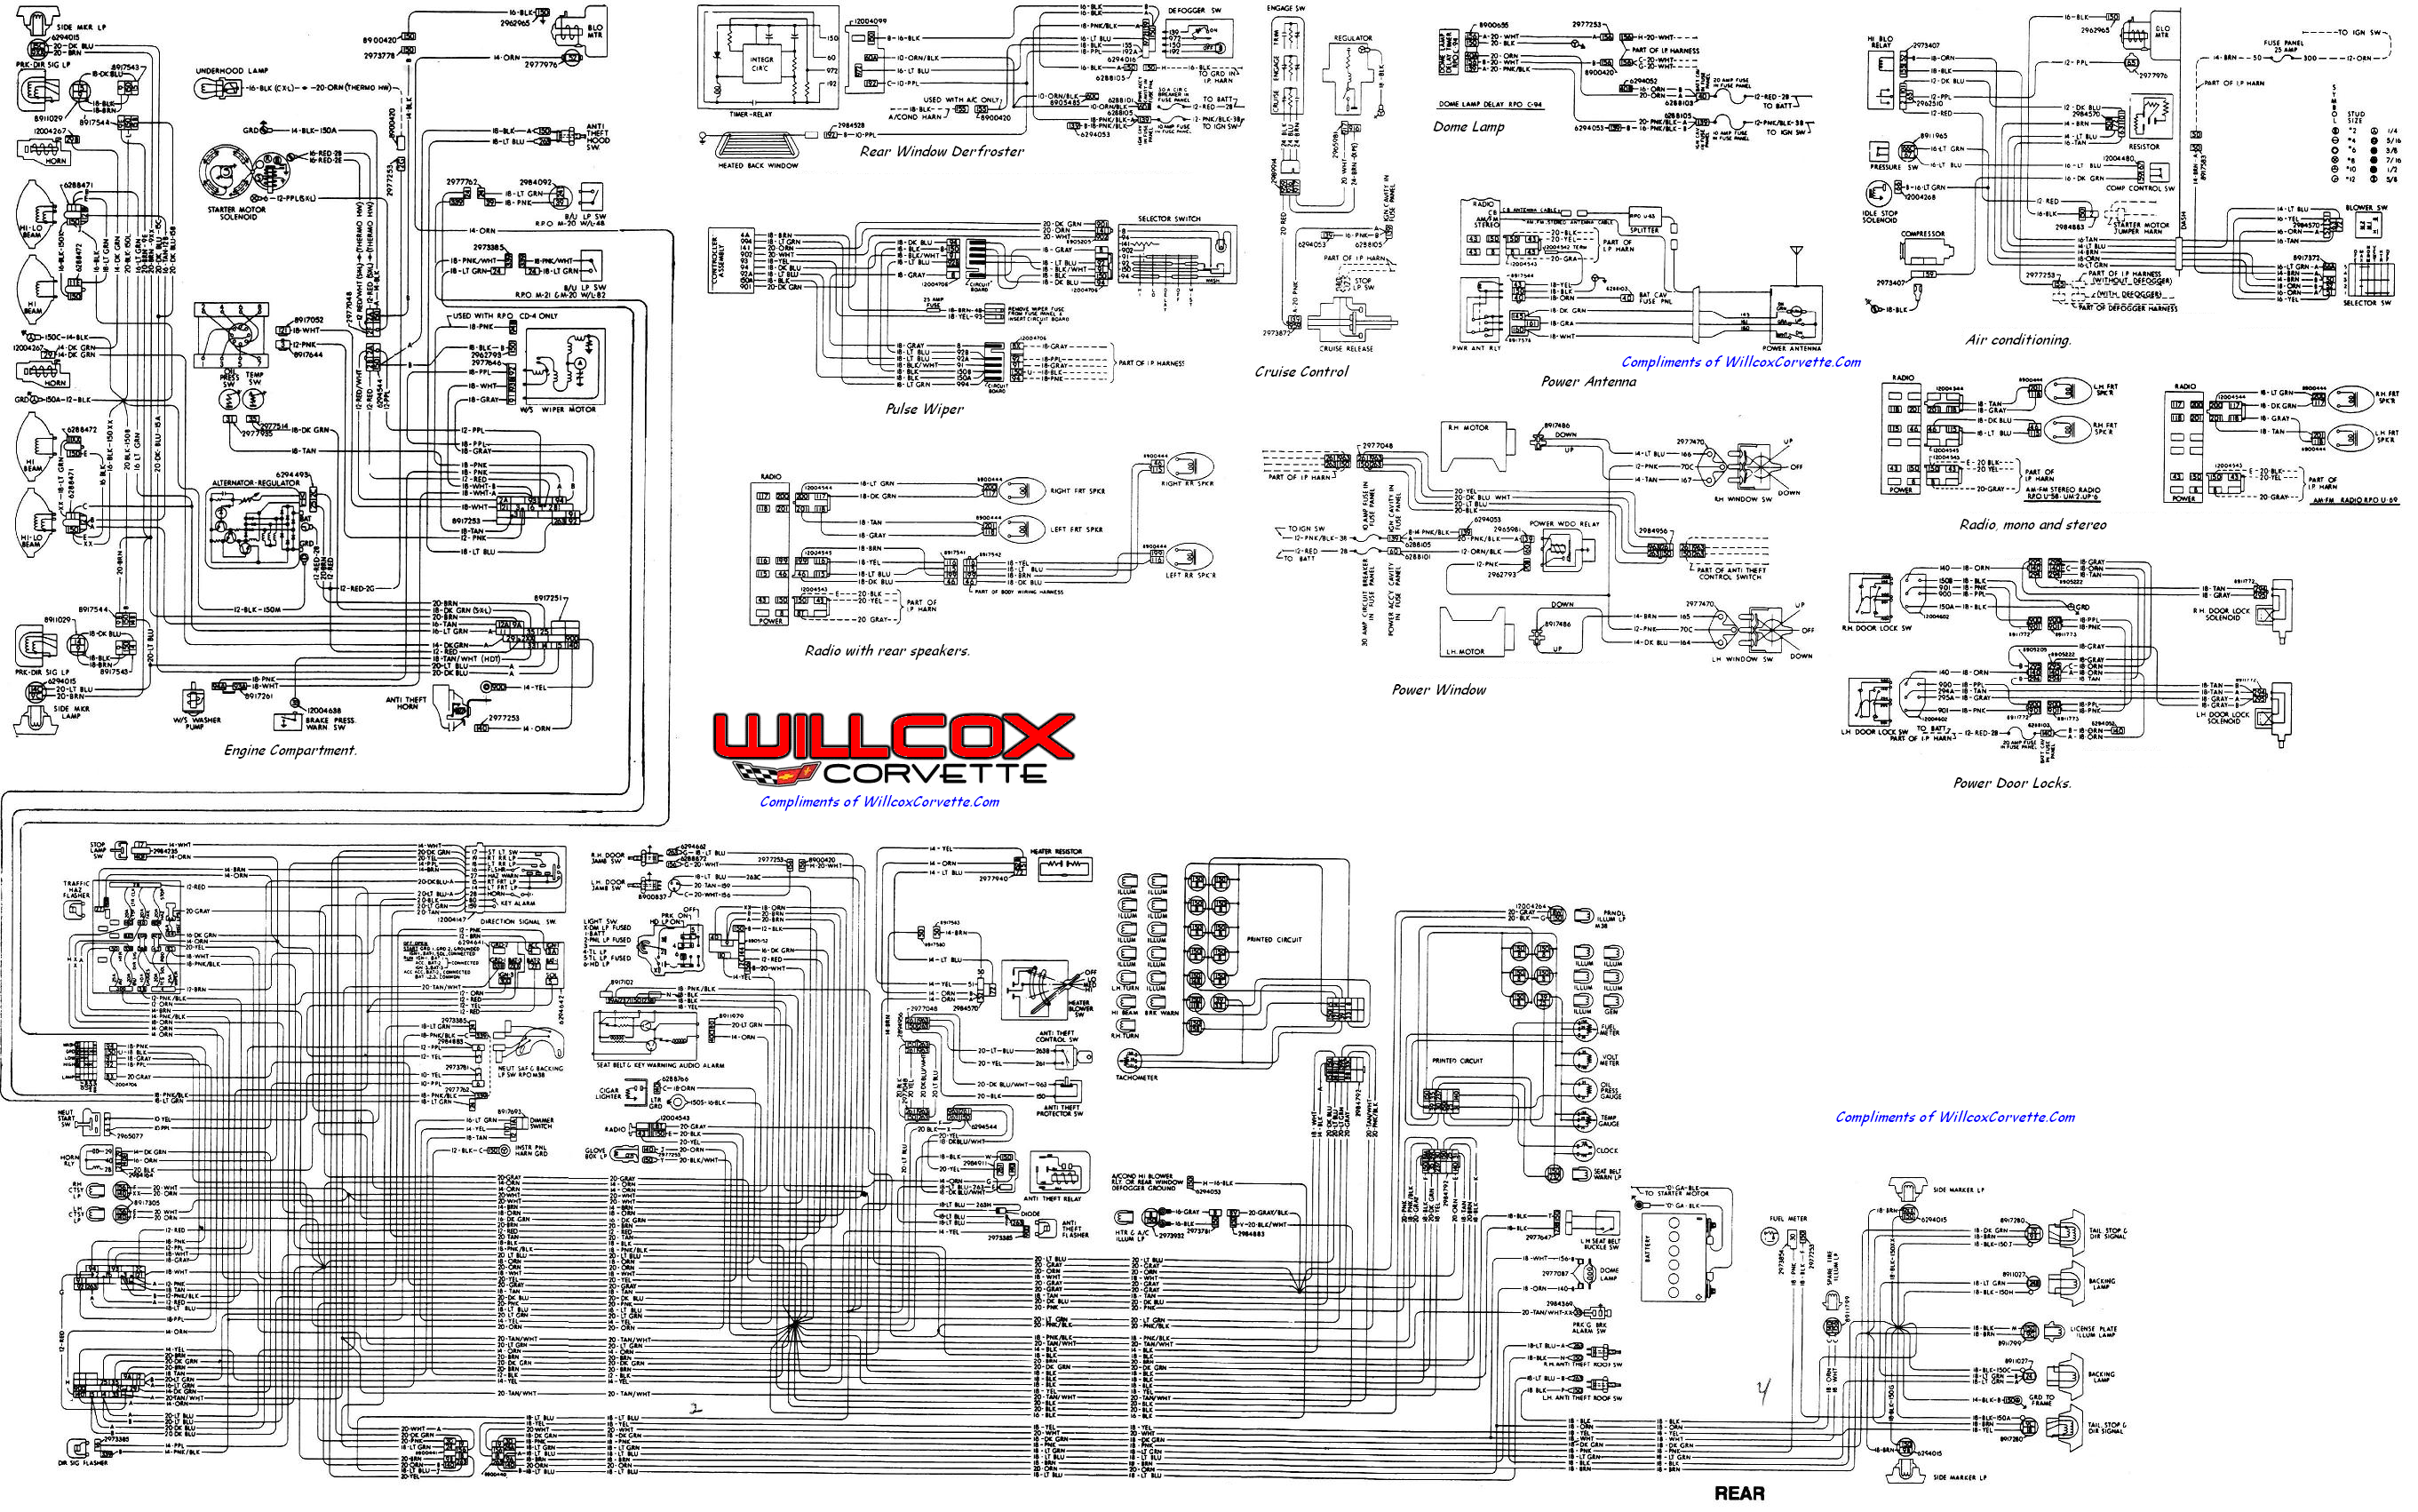 1973 corvette fuse box wiring diagram1973 corvette wiring diagram dd purebuild co \\u2022c3 af c2 bb c2 bfkia fuse box